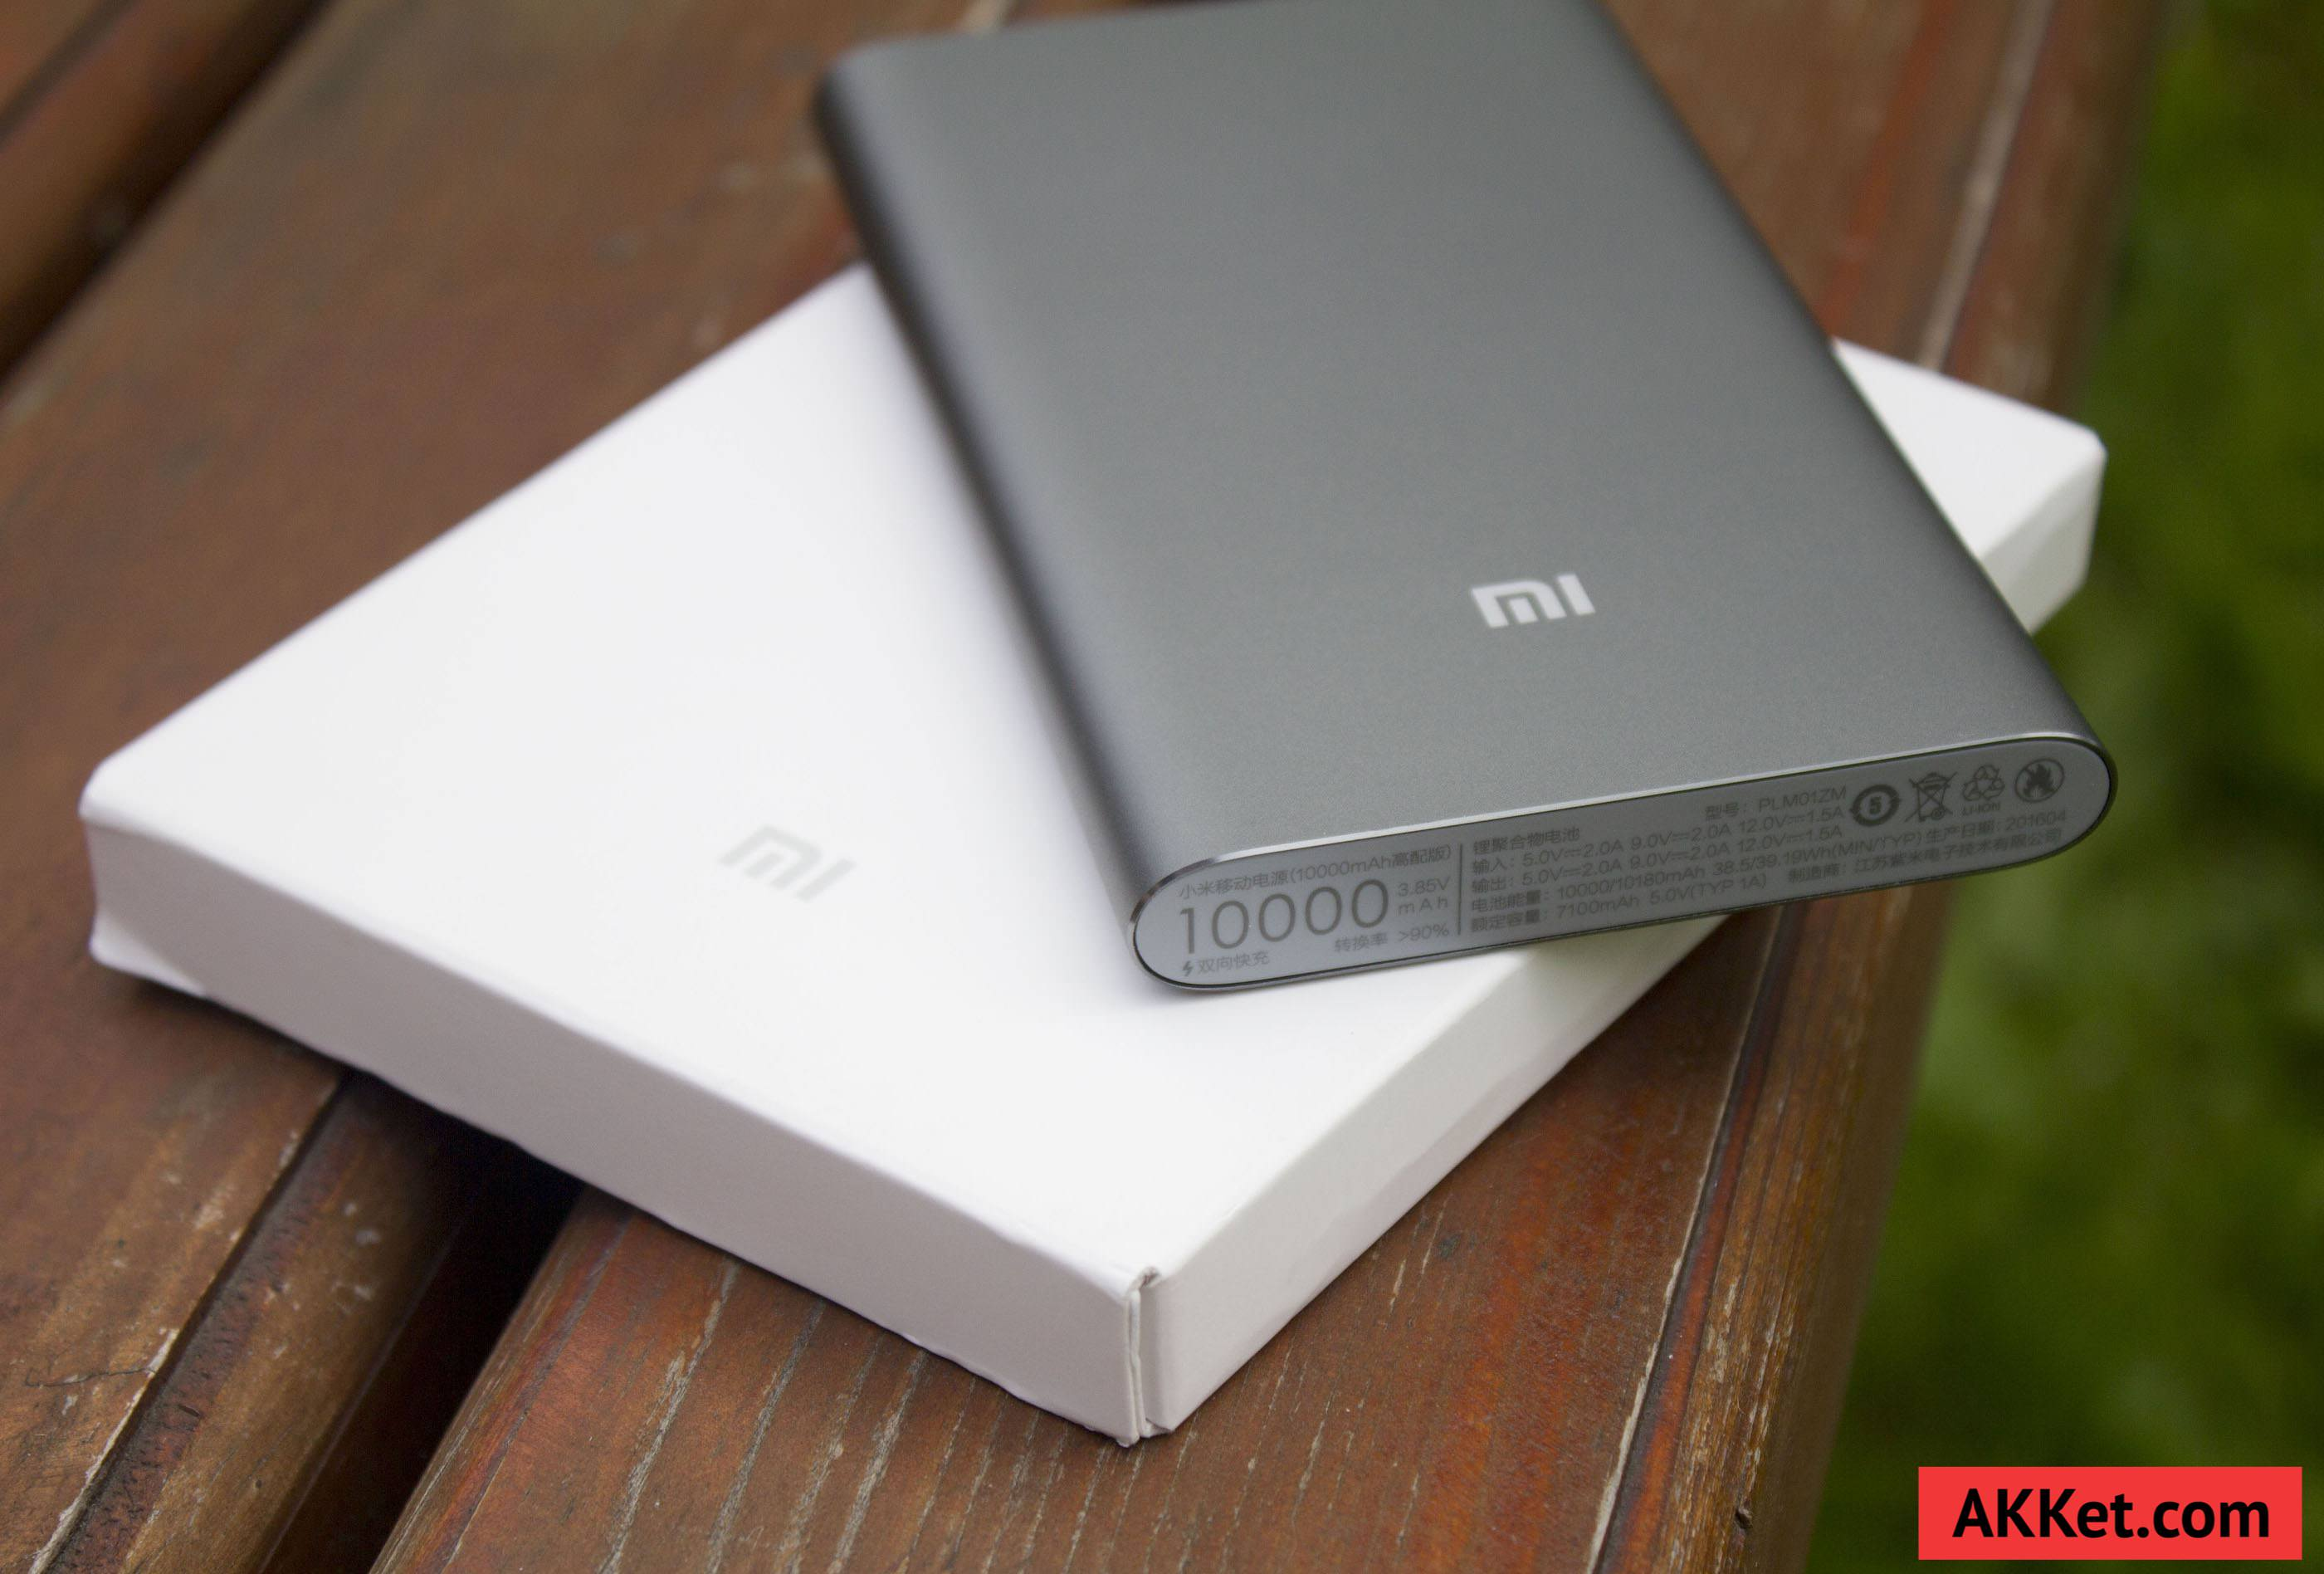 Xiaomi Mi Power Bank Pro 10000 мАч review photo 17